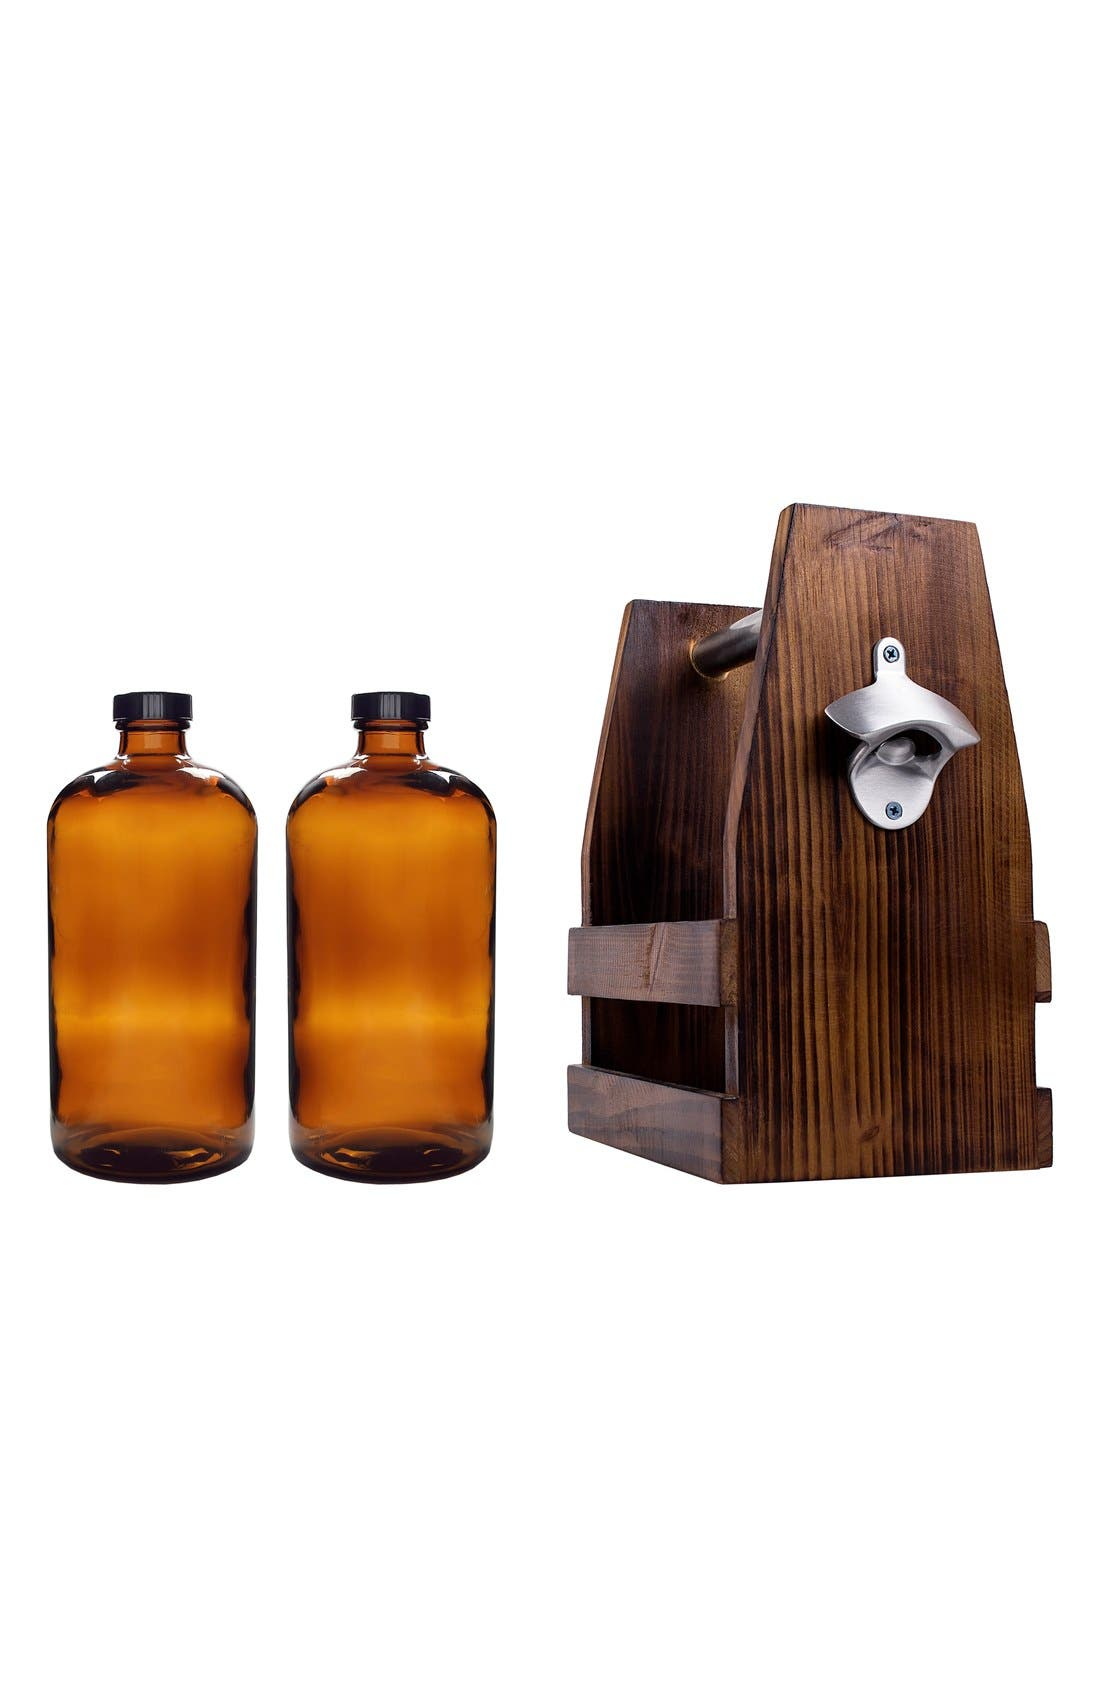 Personalized Craft Beer Carrier & Growlers,                             Main thumbnail 1, color,                             200